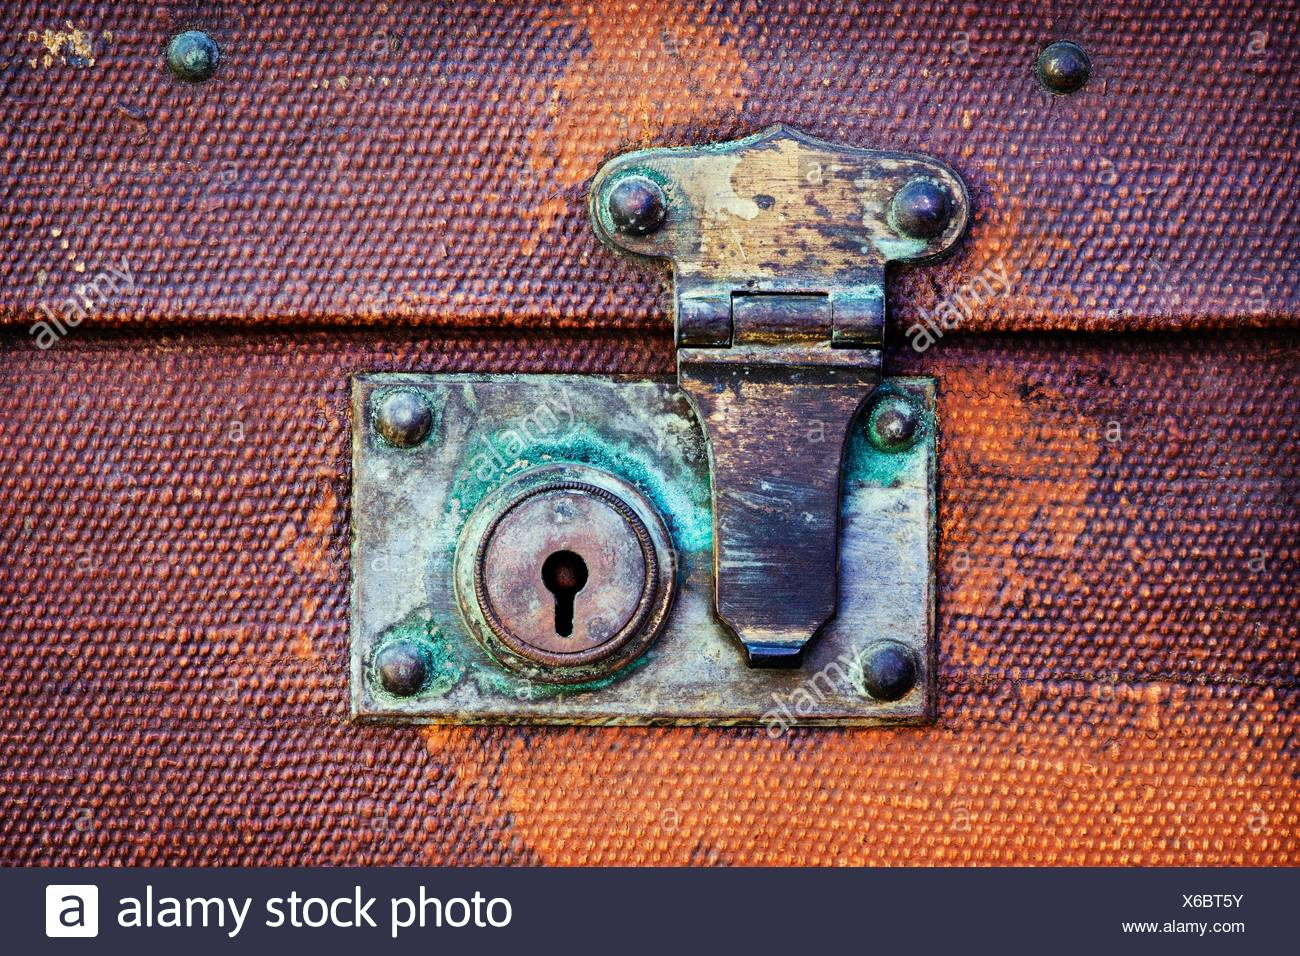 Vintage suitcase lock and fastener close up - Stock Image